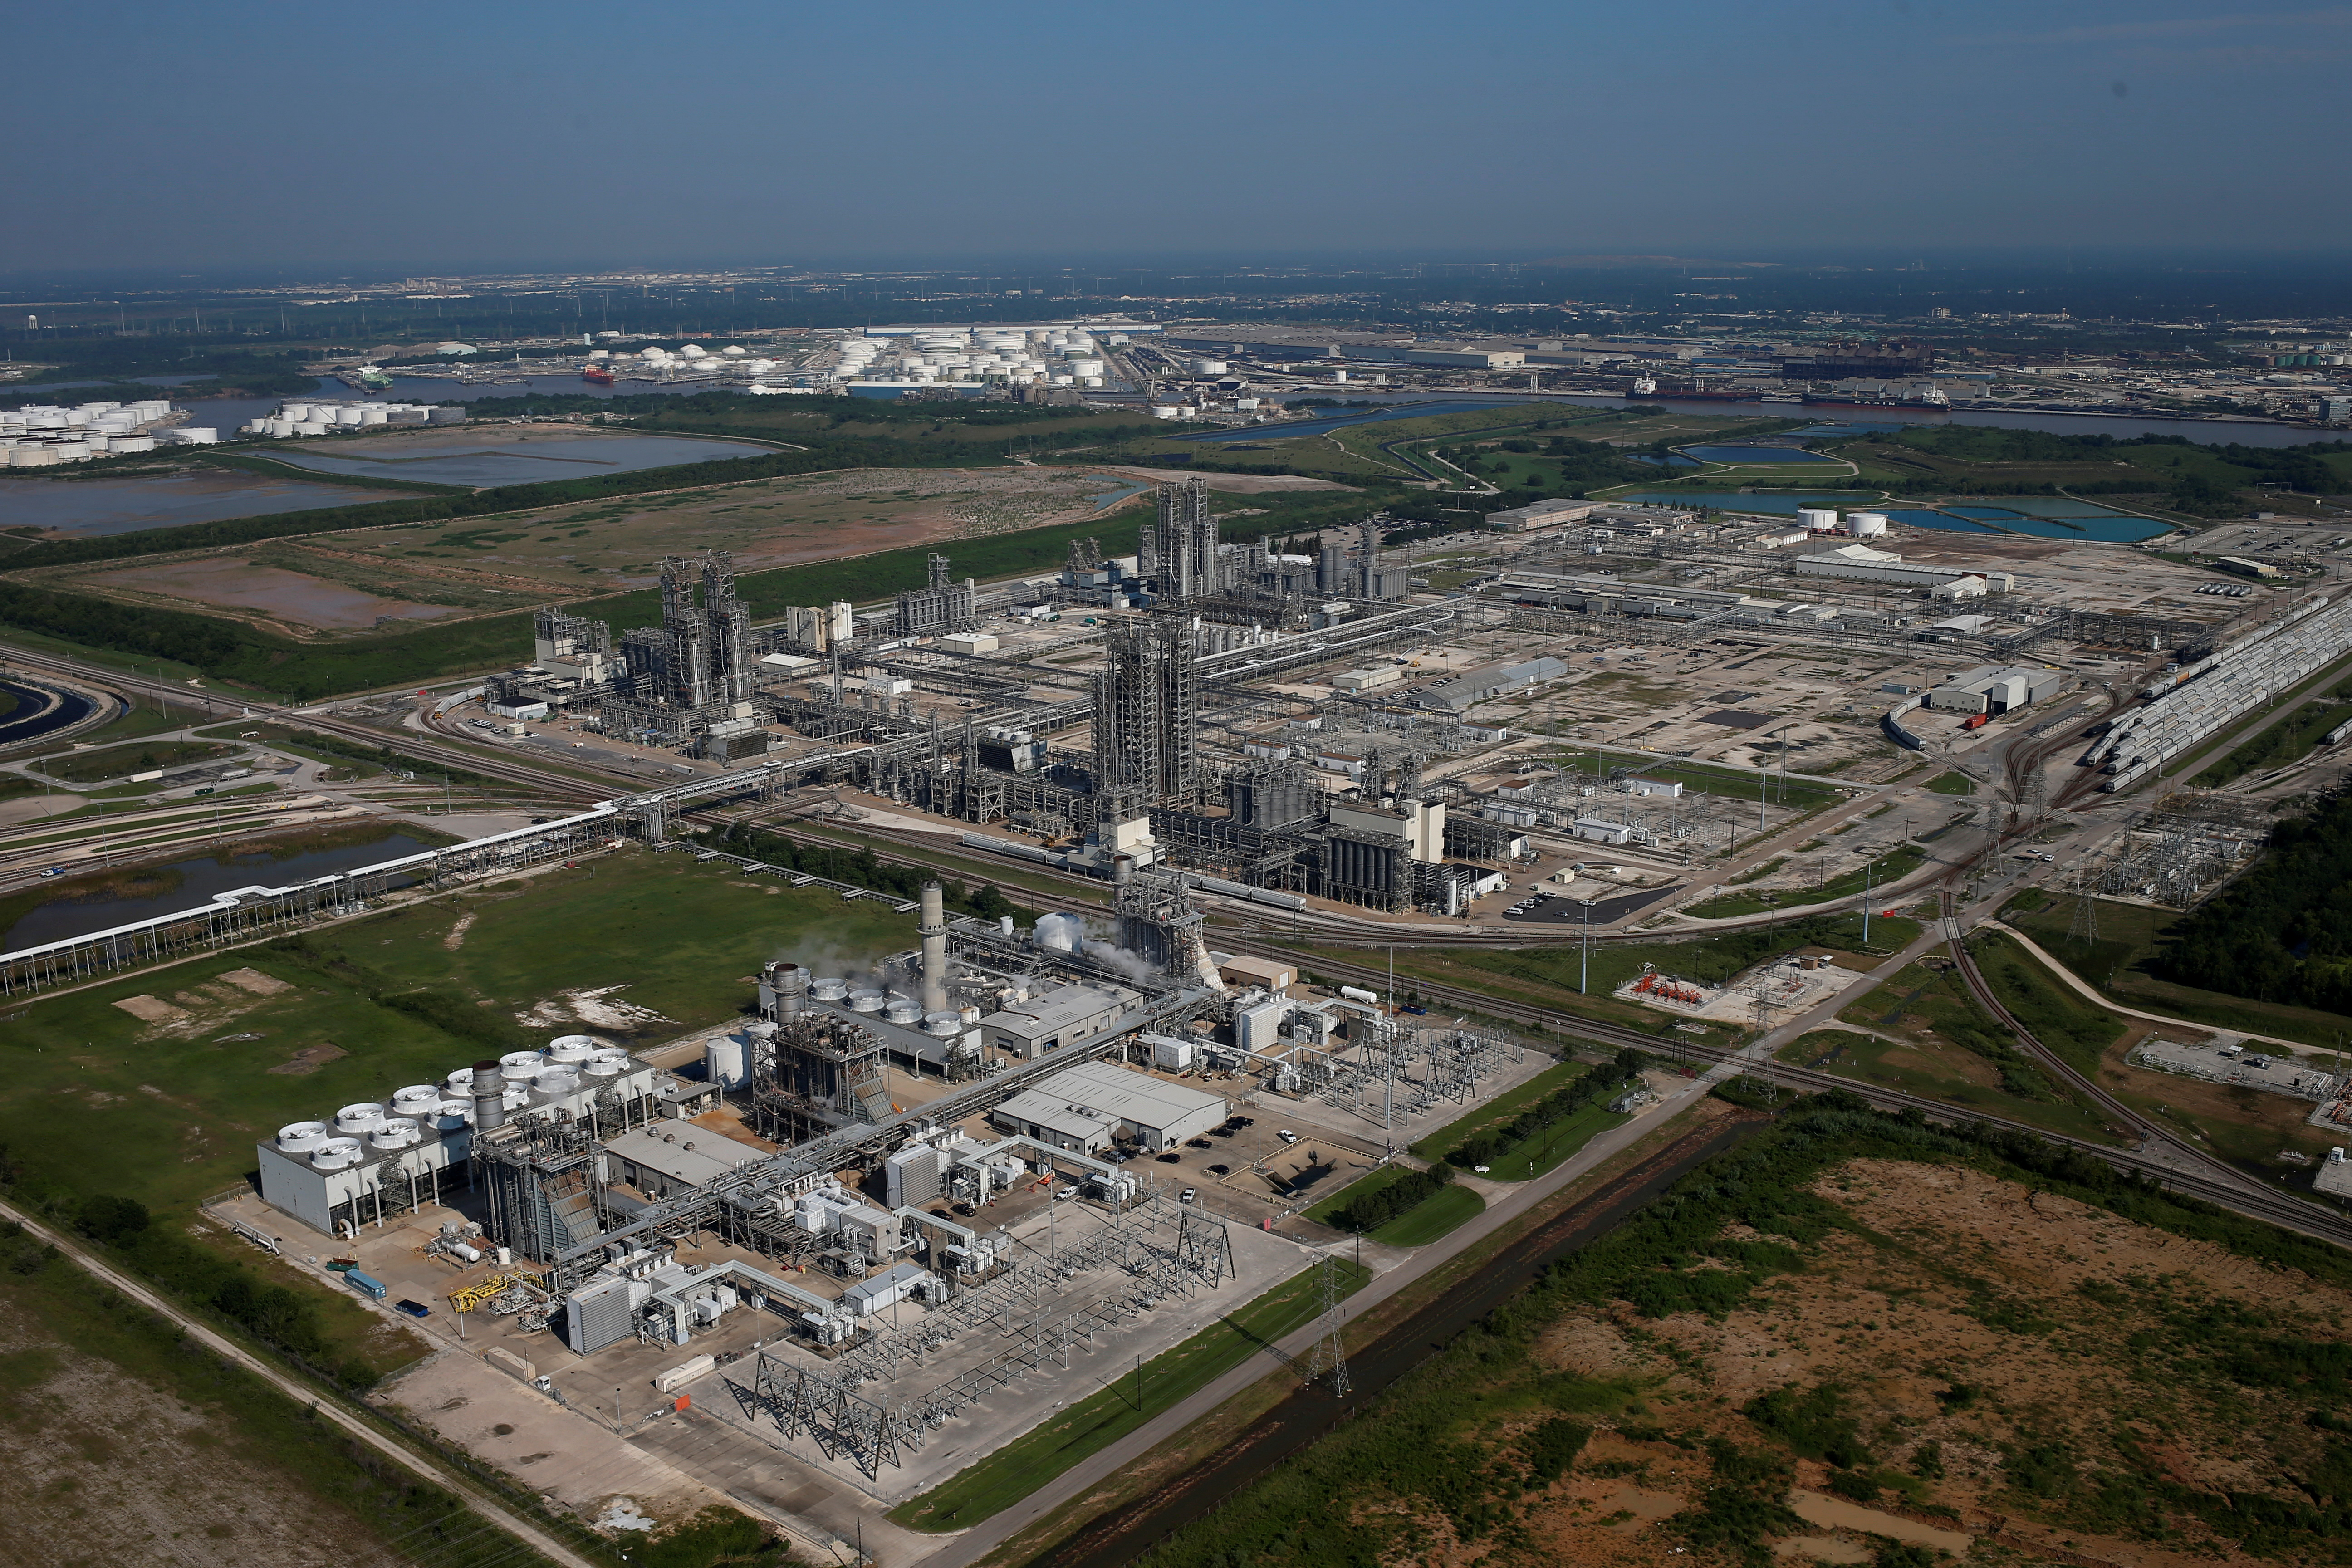 An aerial view of Chevron Phillips Chemical Co is seen in Pasadena, Texas, U.S. August 31, 2017. REUTERS/Adrees Latif/File Photo